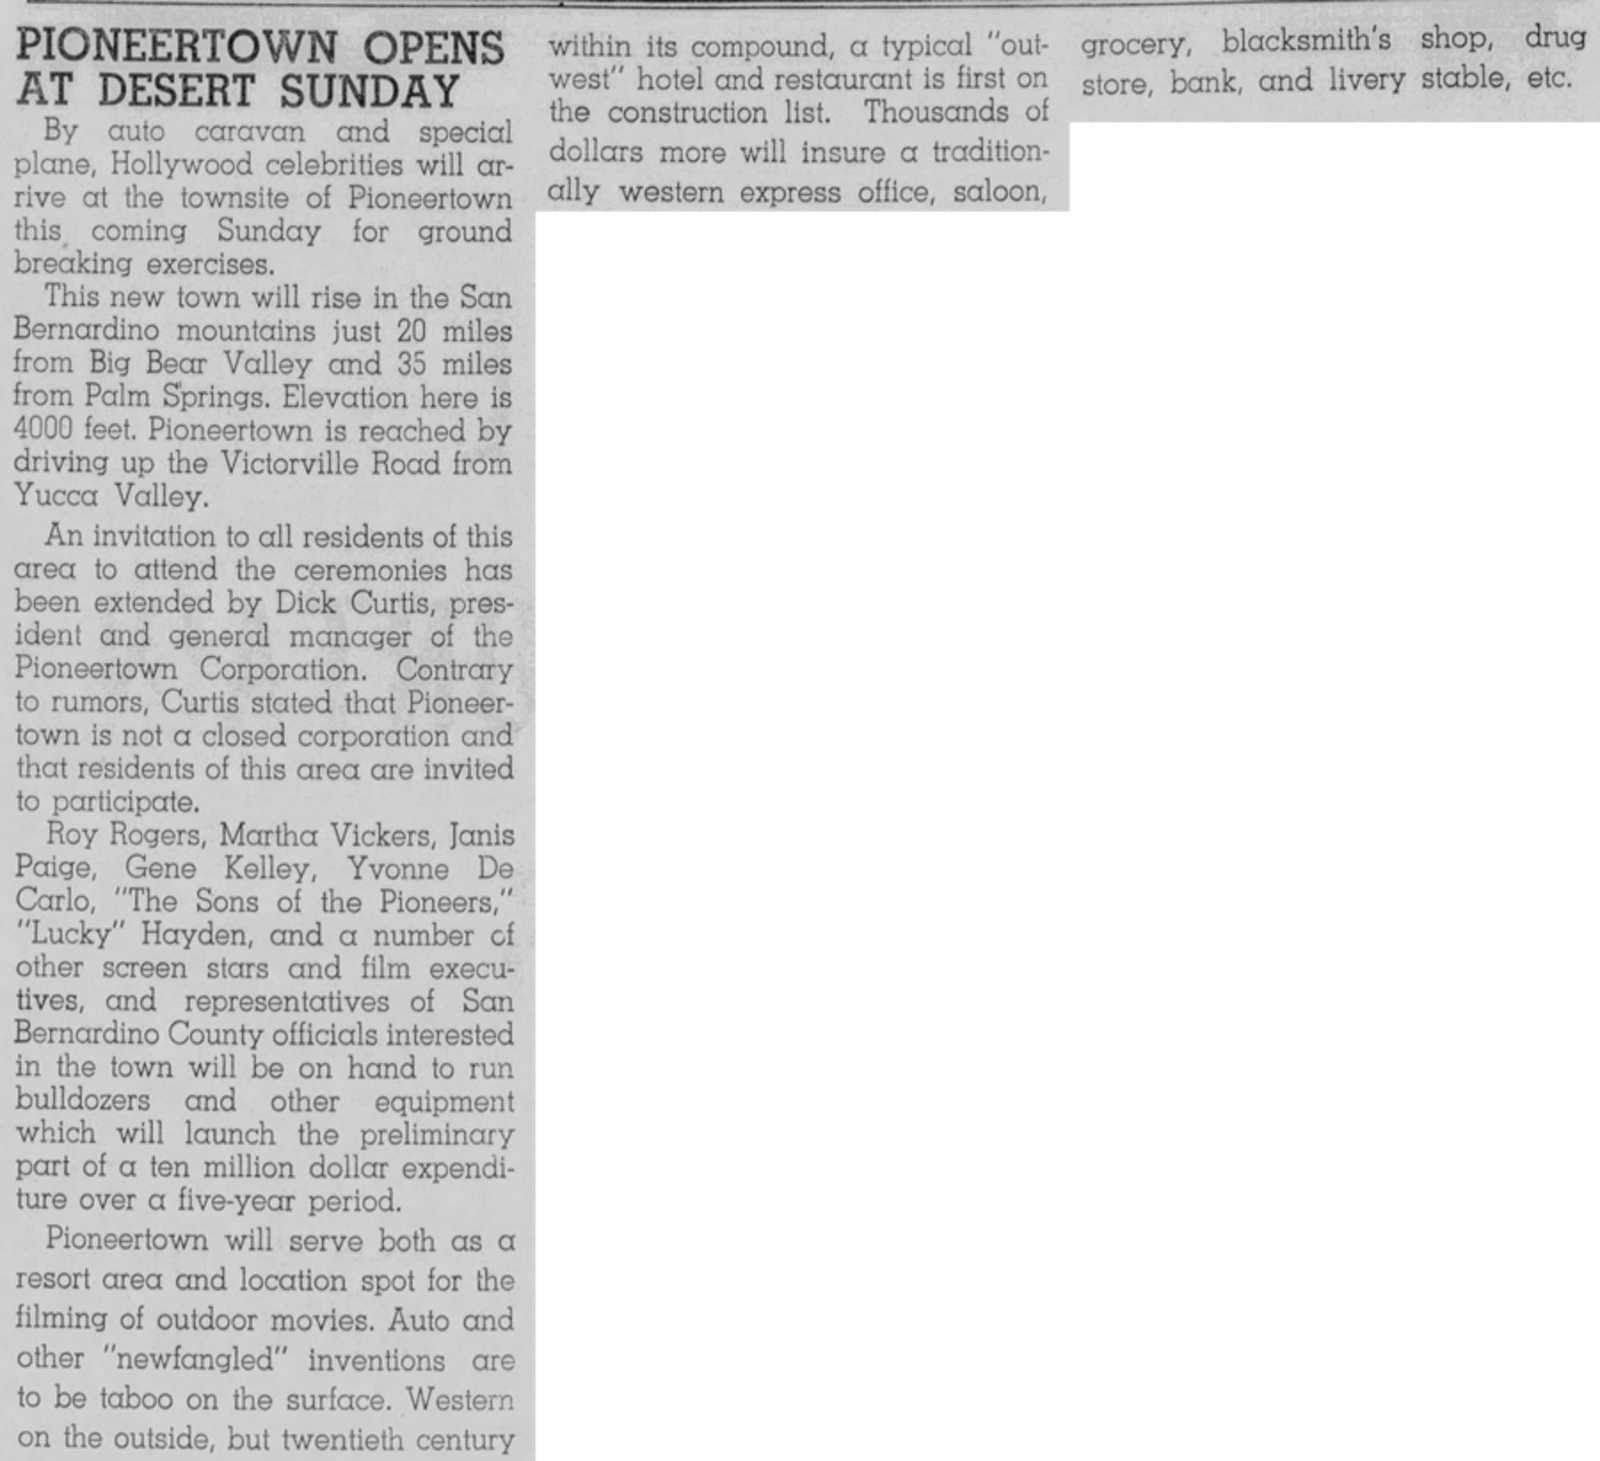 Aug. 30, 1946 - The Grizzly clipping